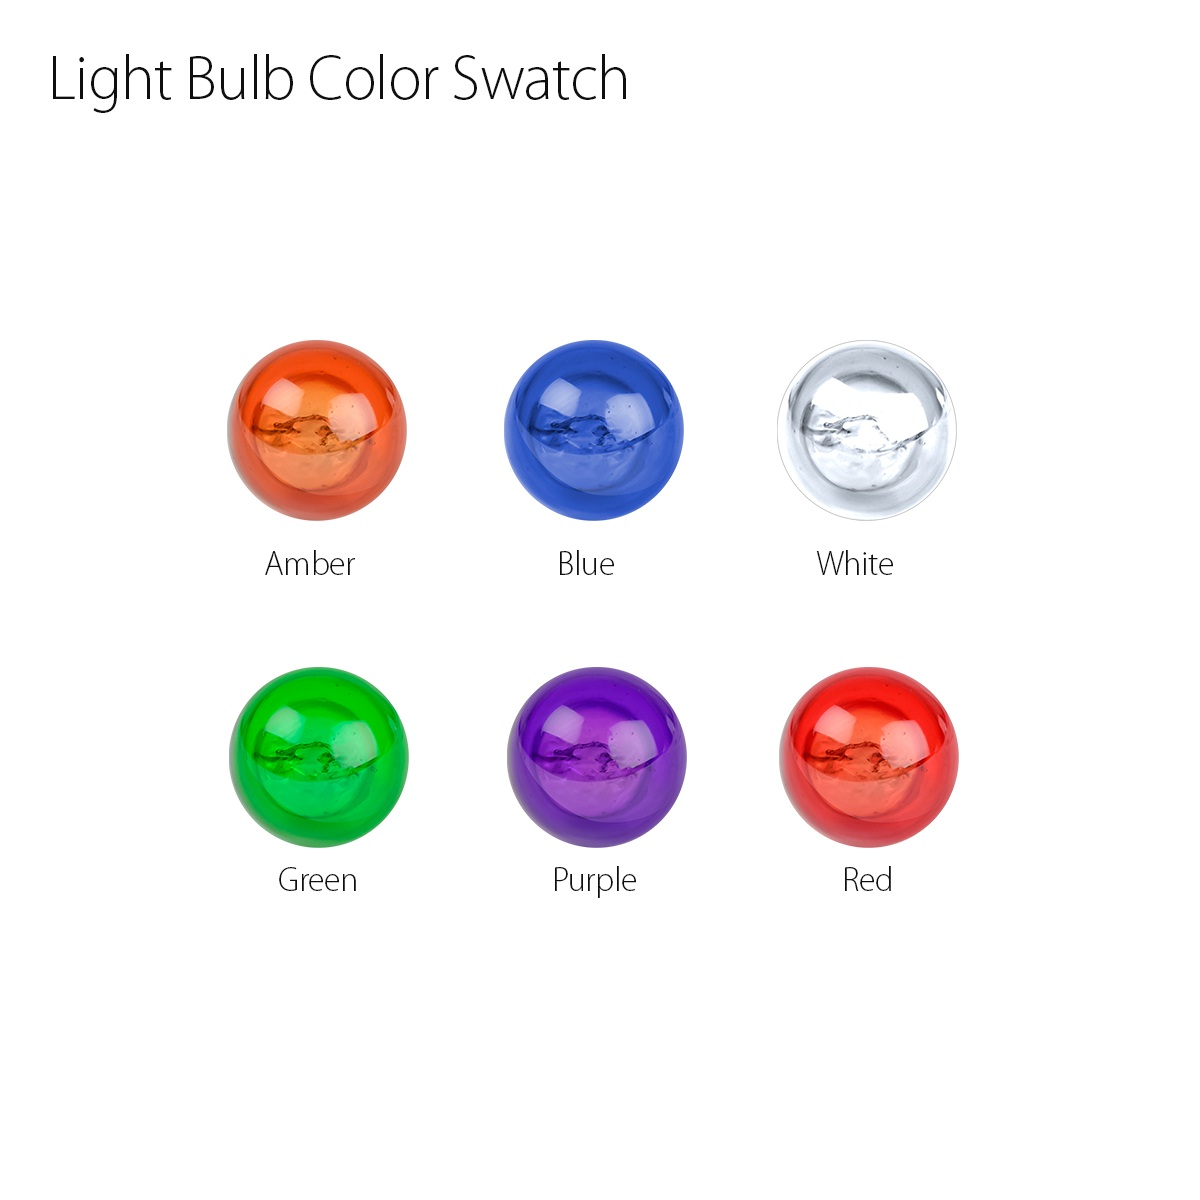 #1156/ #1157 Miniature Replacement Color Light Bulb Swatch